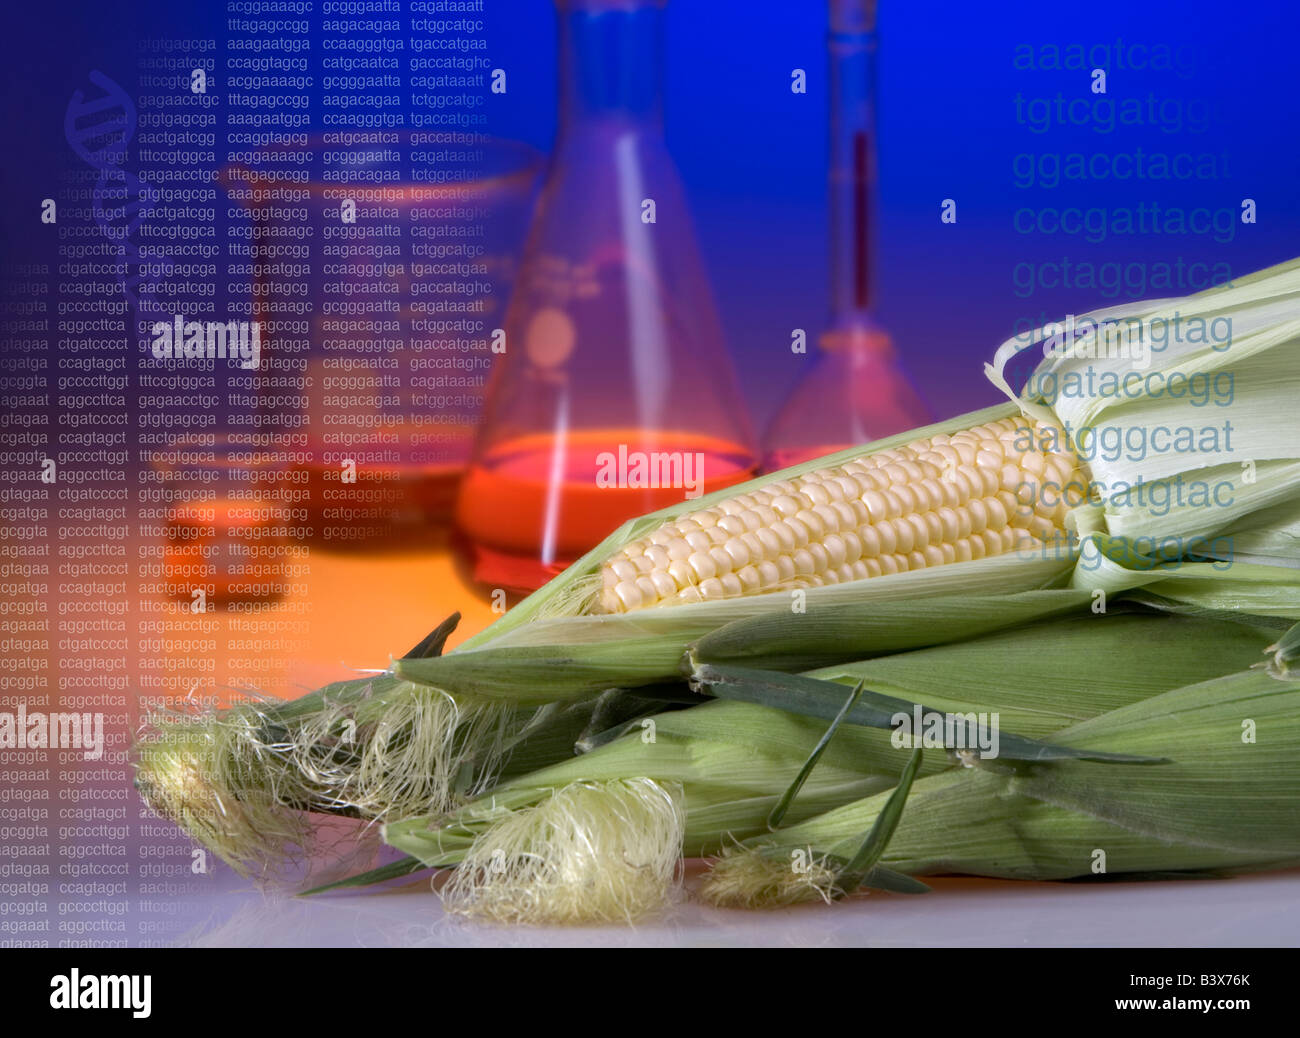 Concept shot of genetically modified corn showing beakers and DNA sequence codes and a helix. - Stock Image